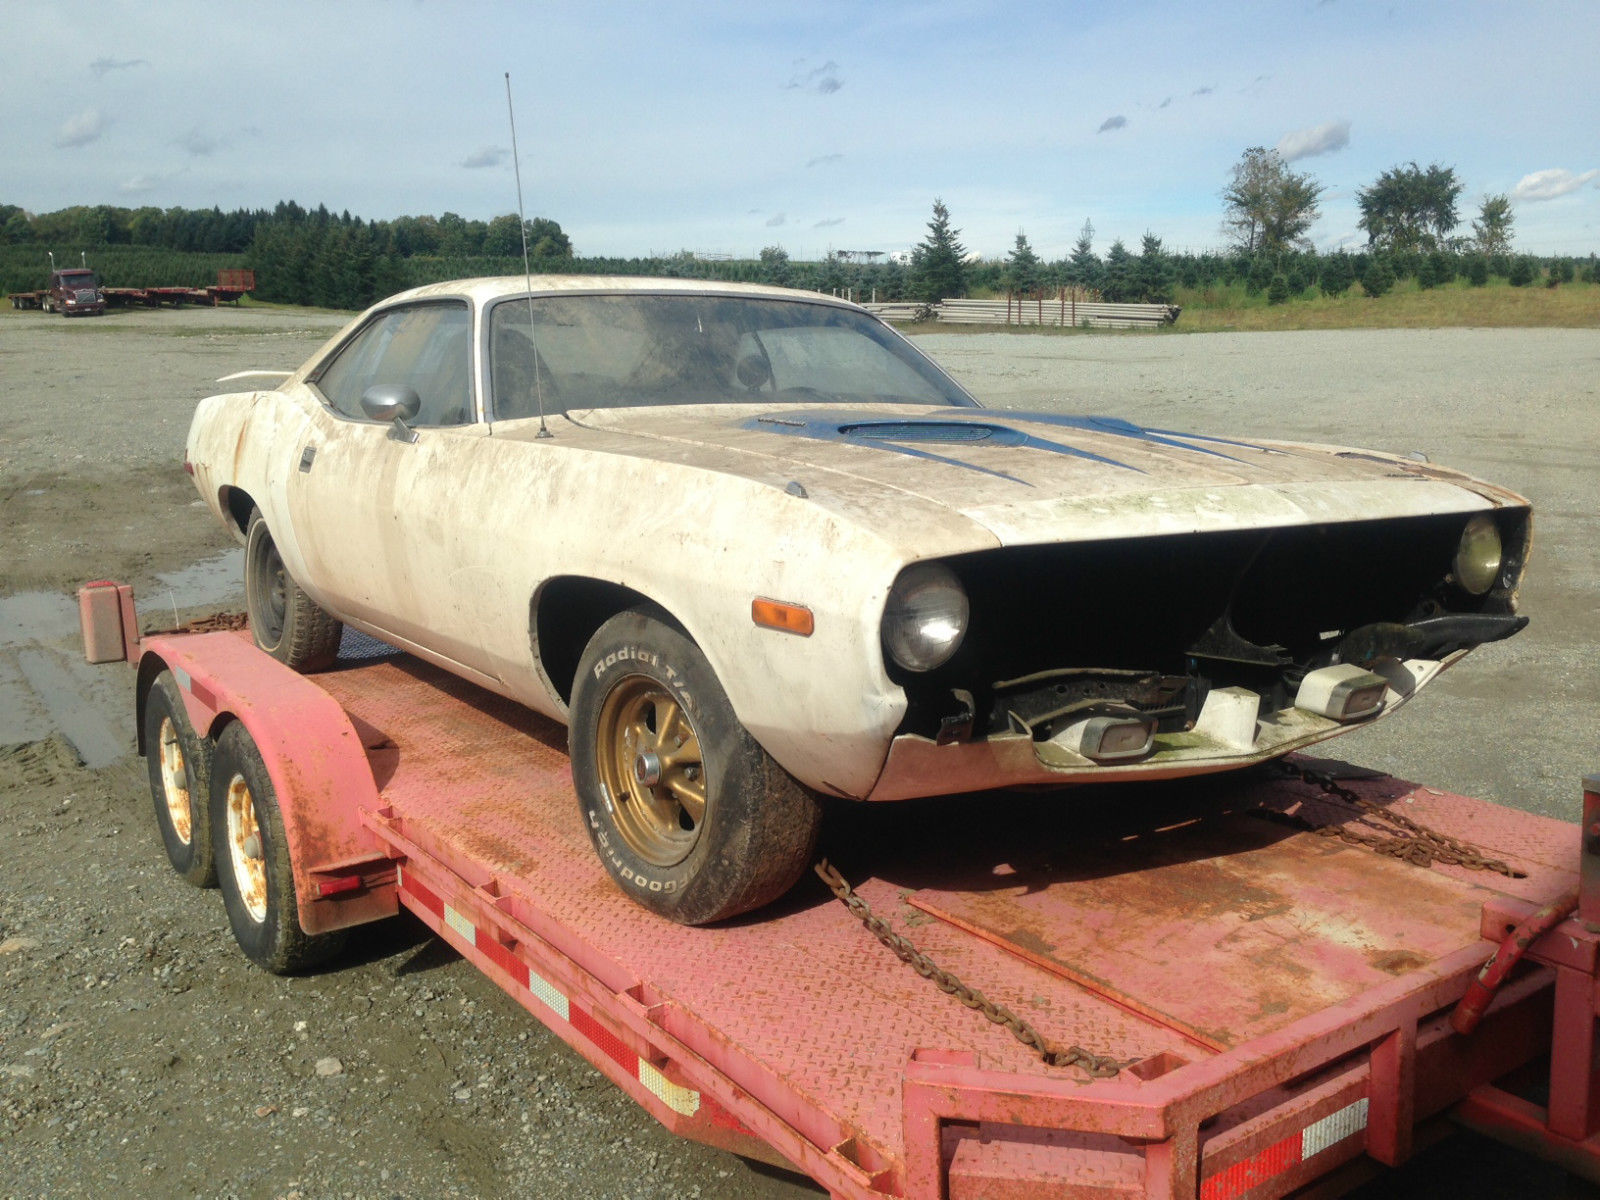 1972 Plymouth Barracuda - Project Cars For Sale